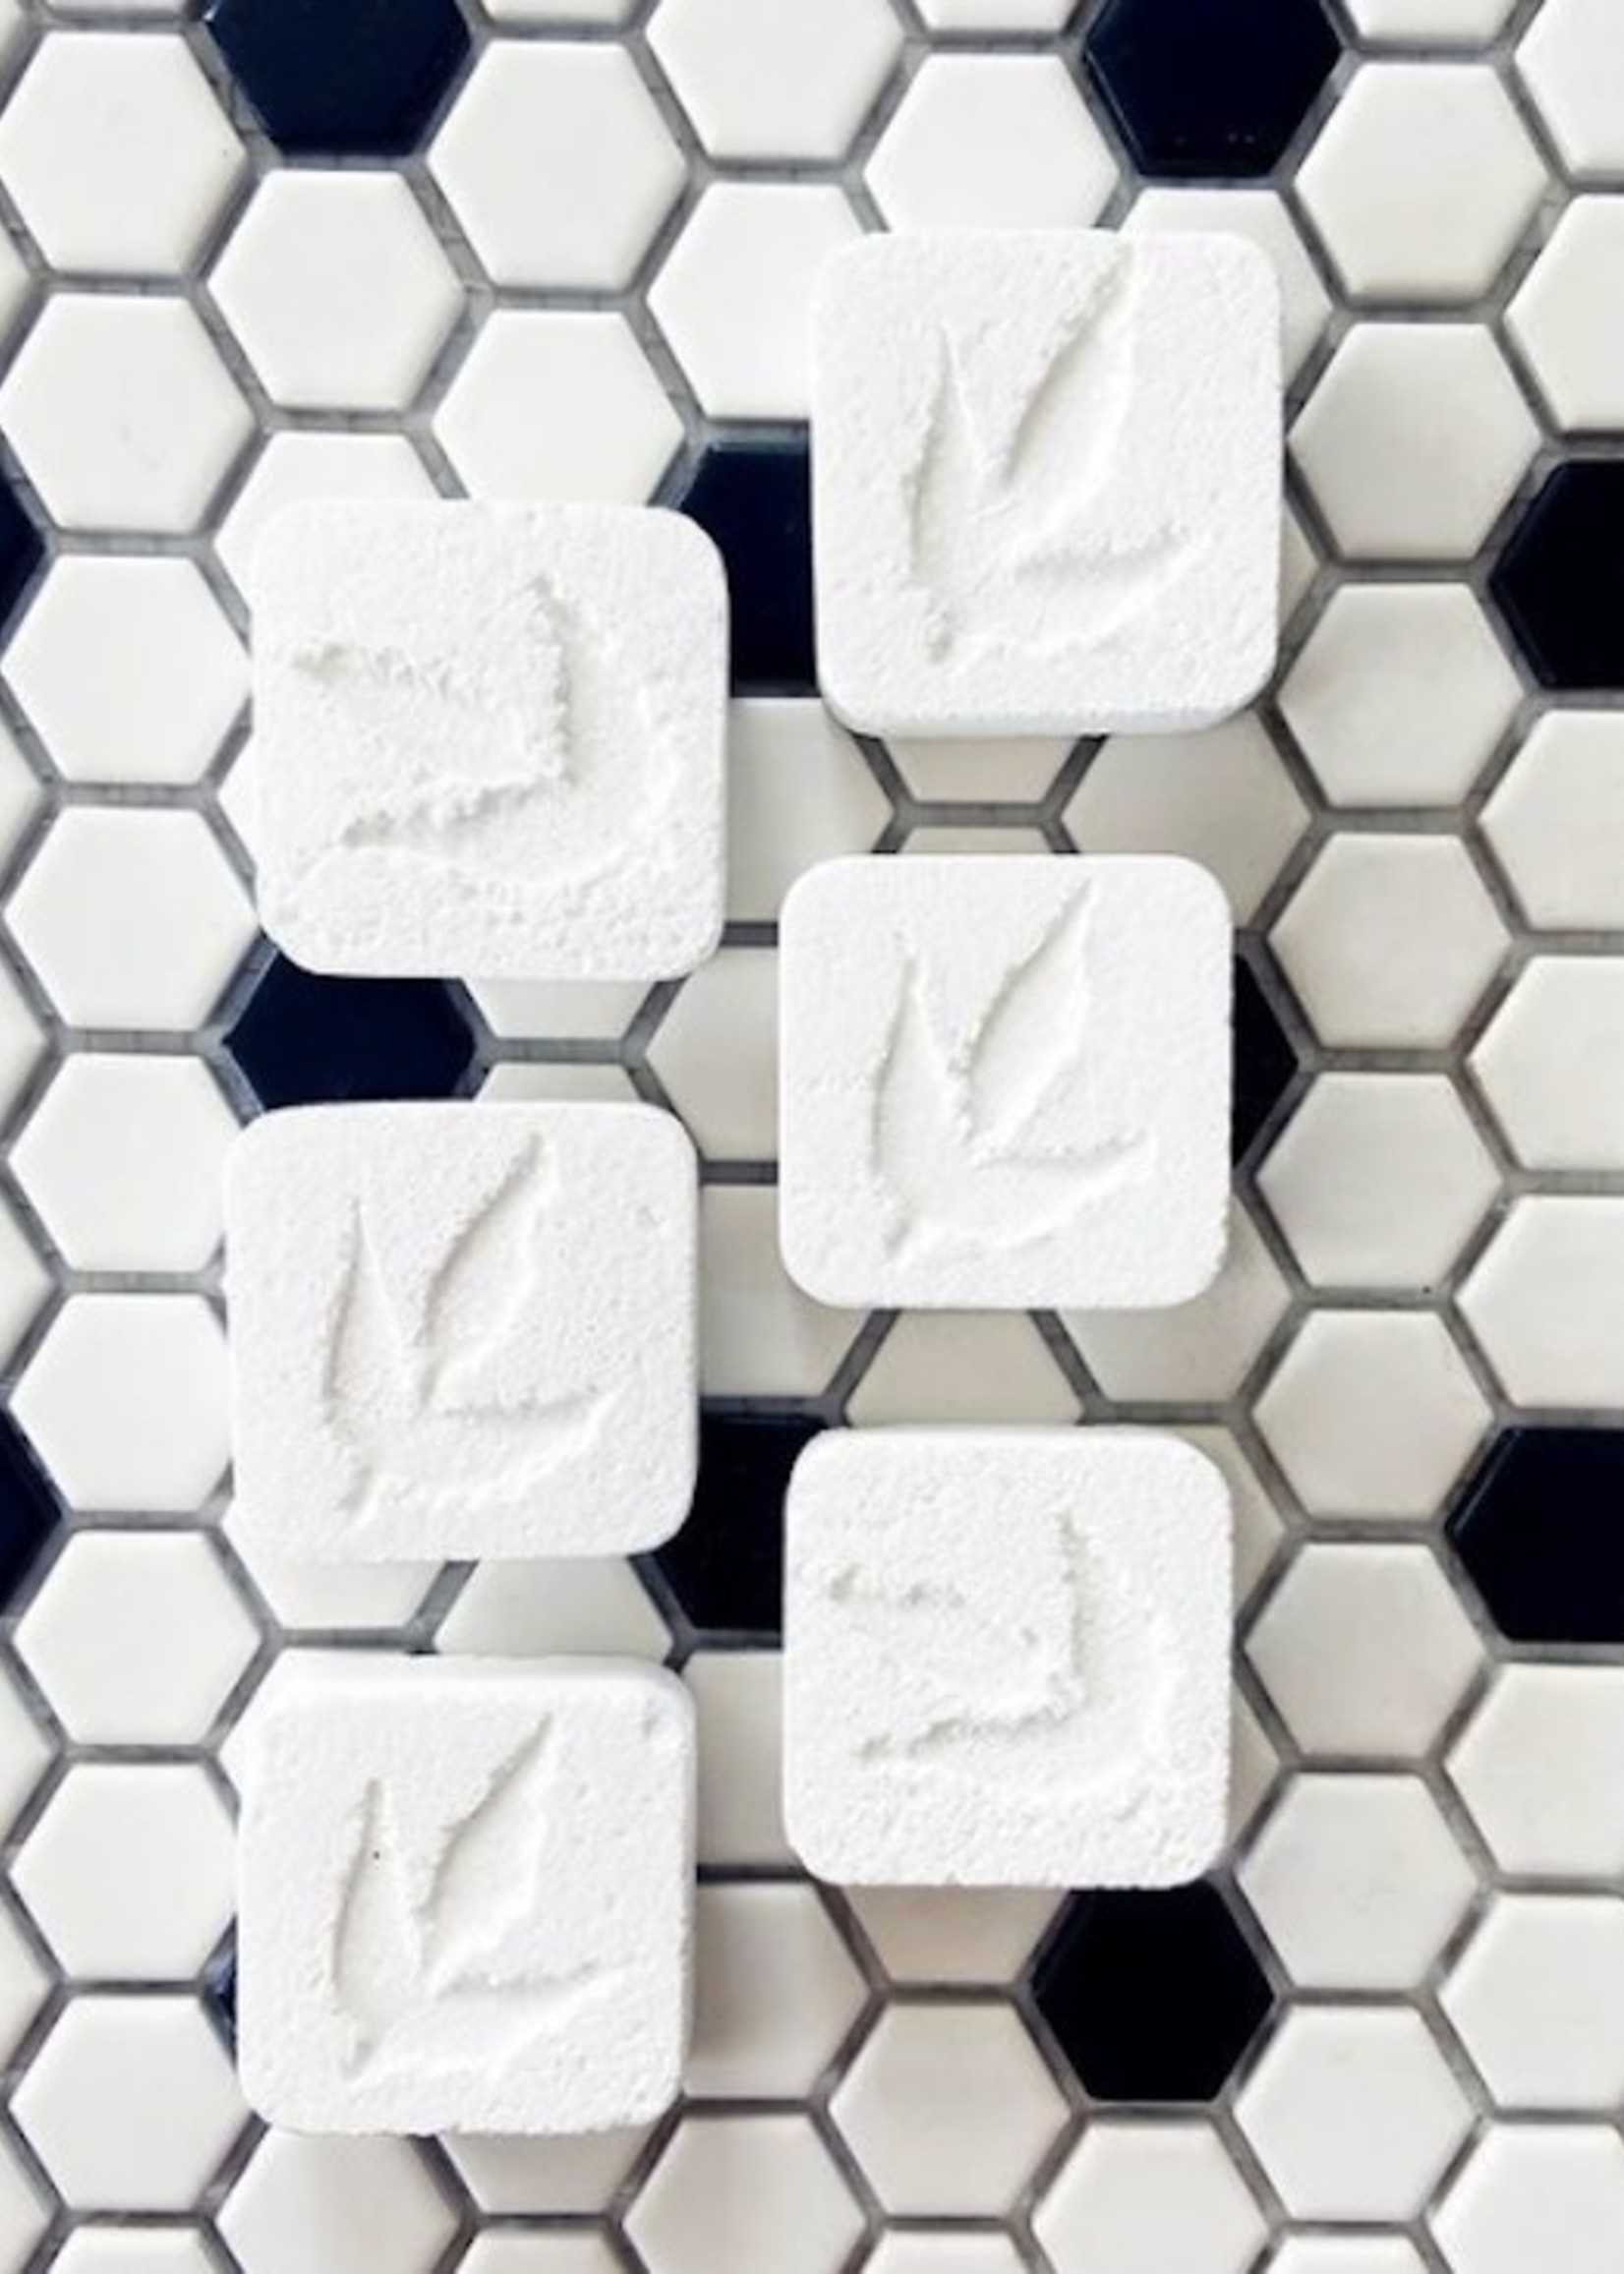 MamaSuds Toilet Cleaning Tabs